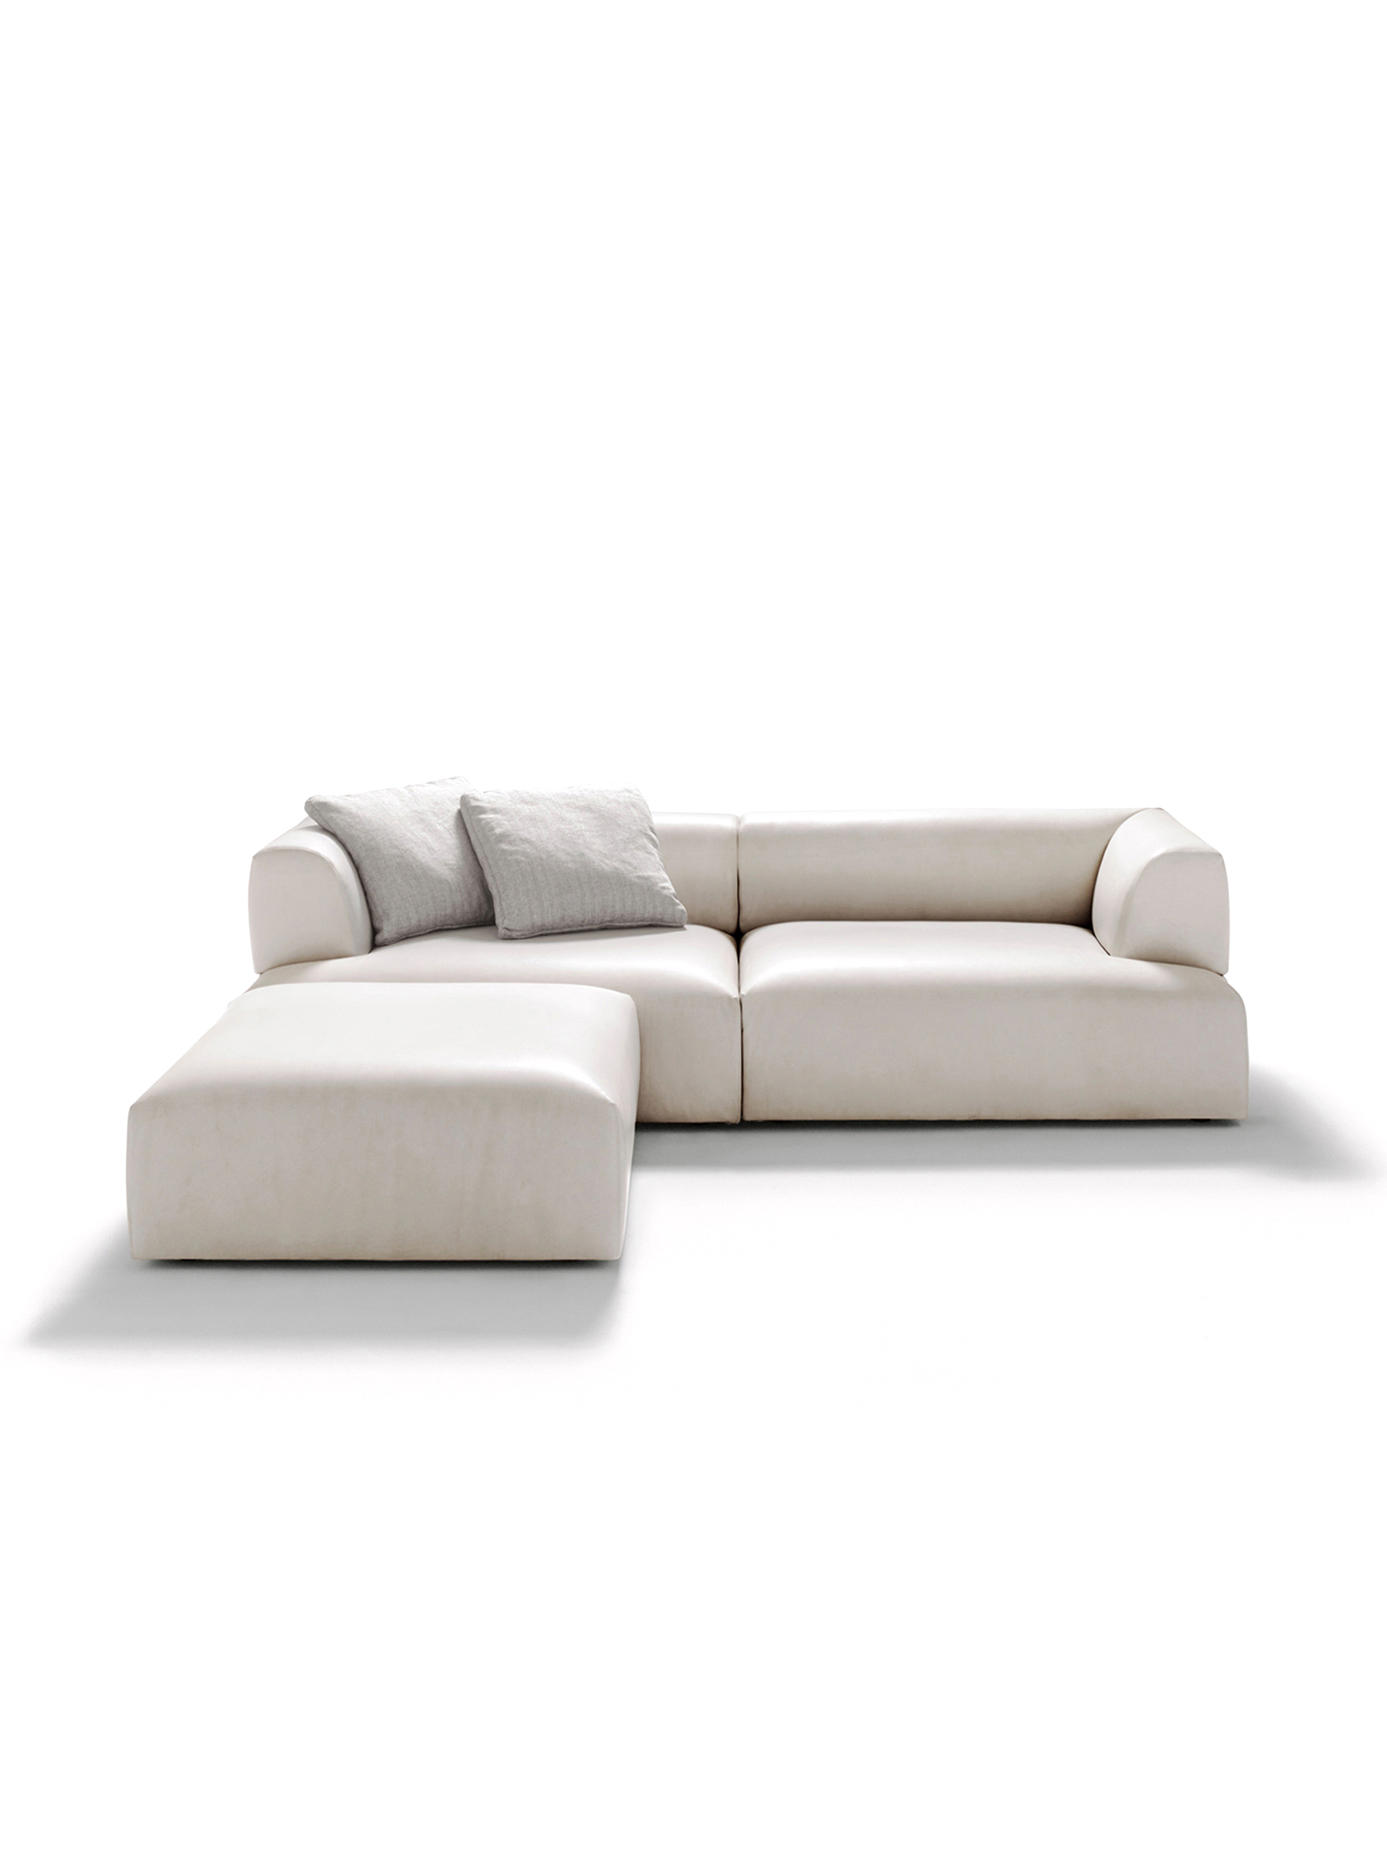 ATALANTE - Sofas from De Padova | Architonic